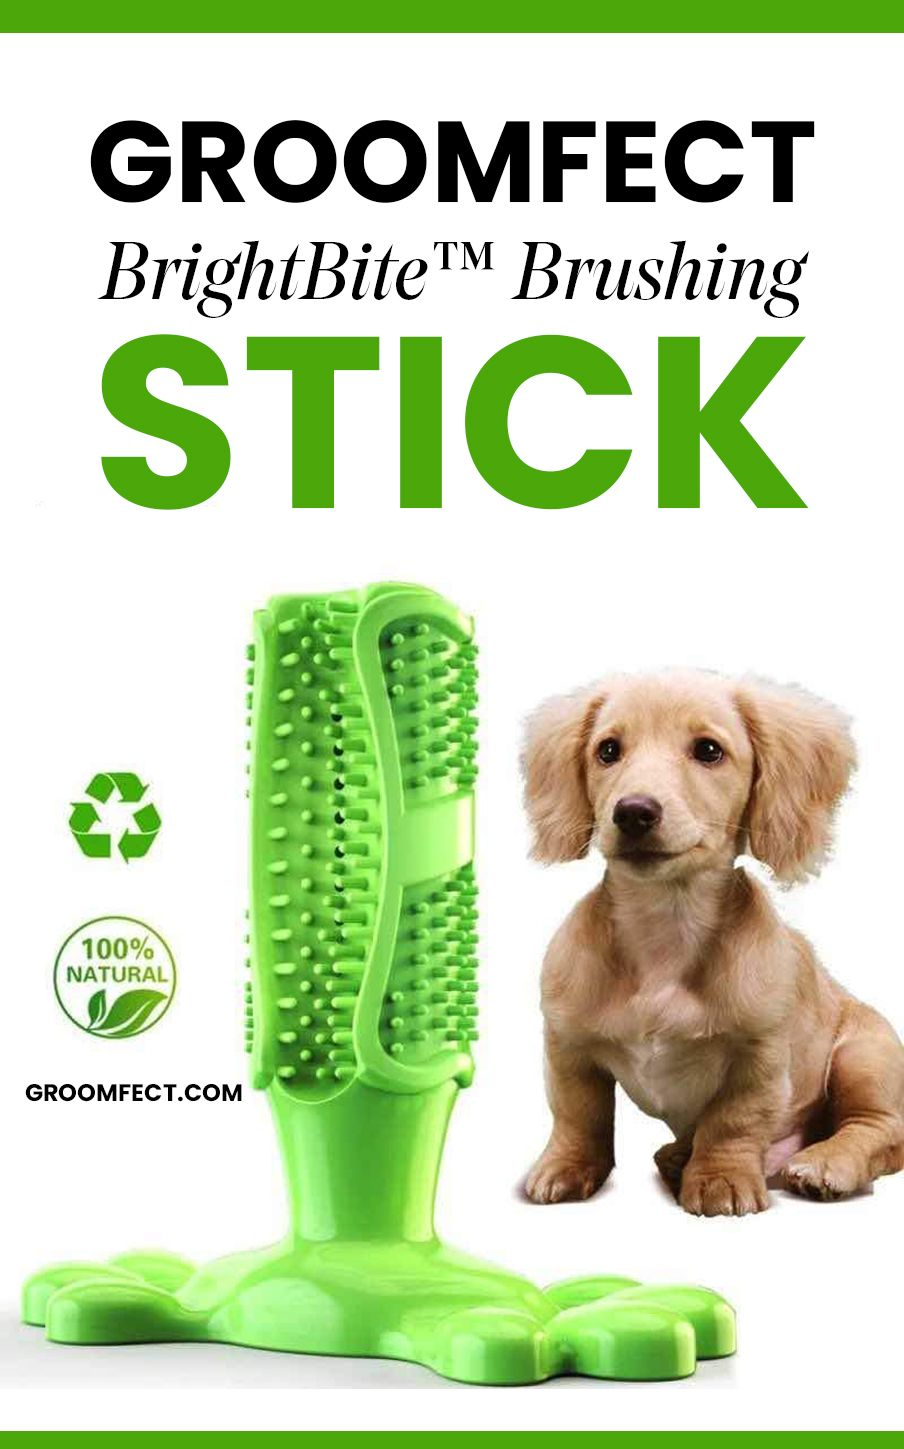 Groomfect Brightbite Is A Low Maintenance Way Of Providing Dental